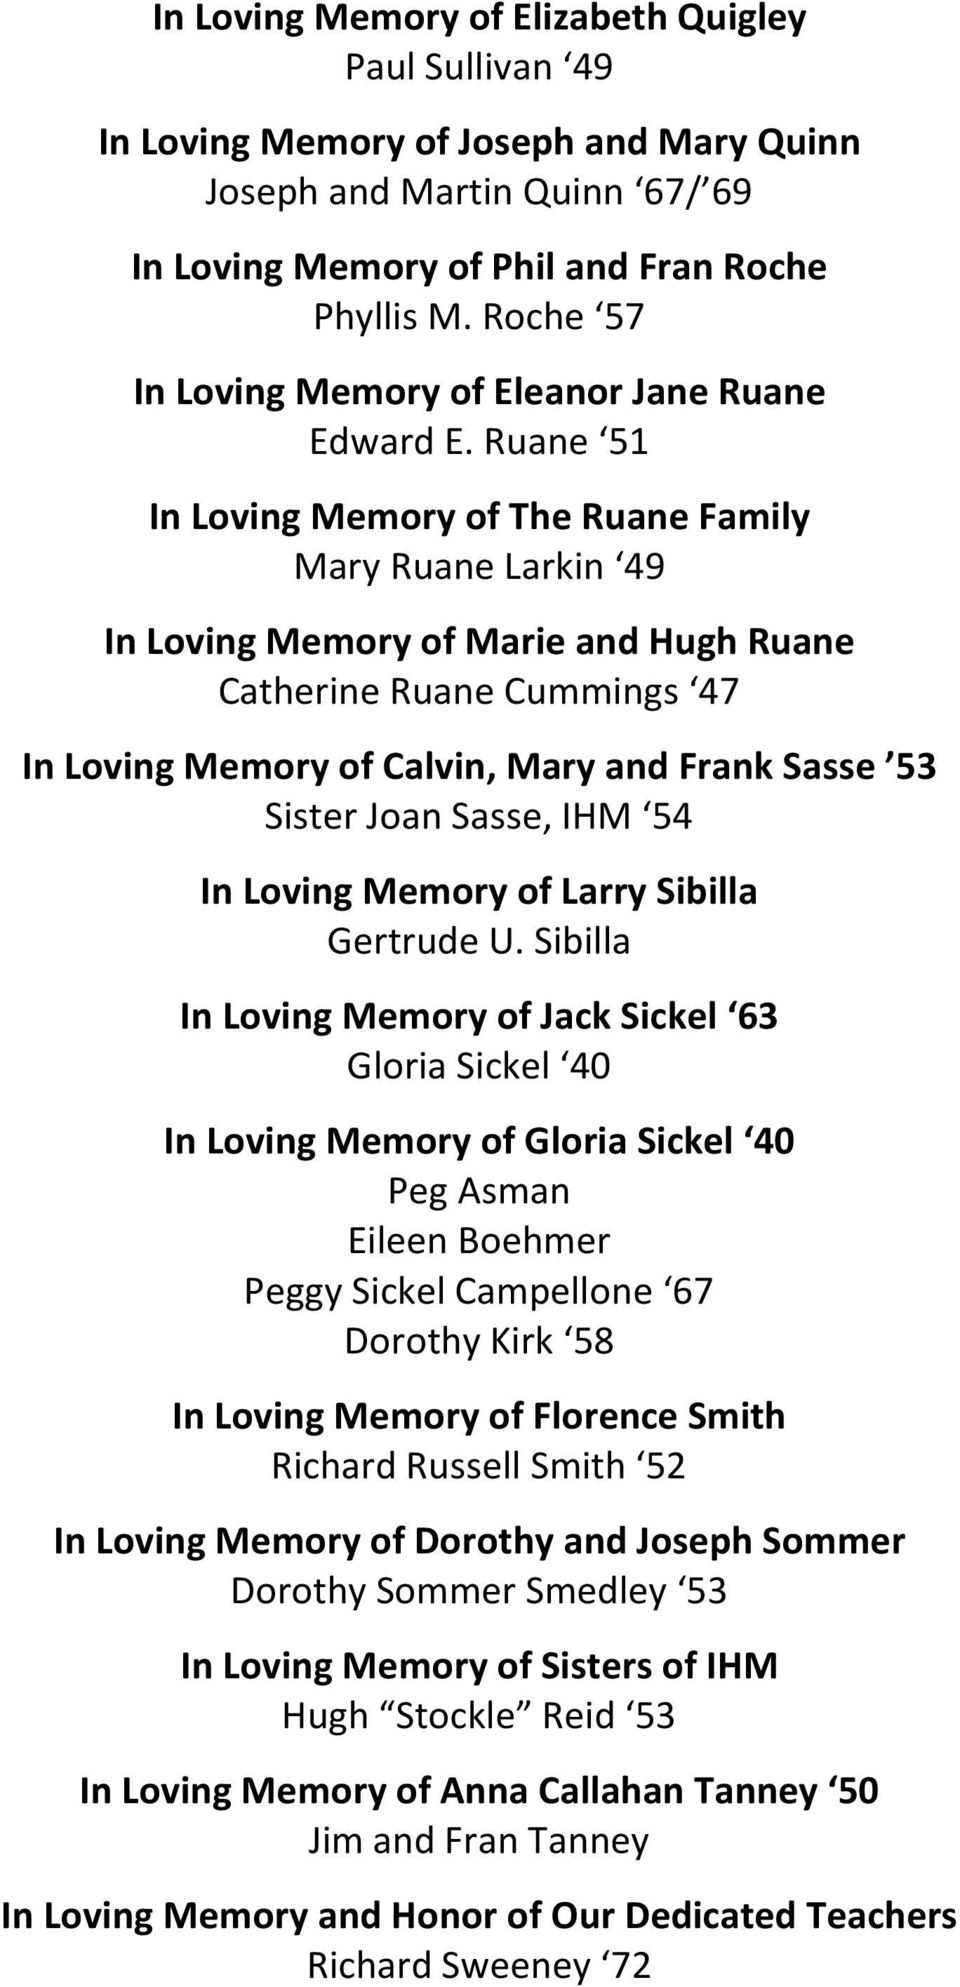 Ruane 51 In Loving Memory of The Ruane Family Mary Ruane Larkin 49 In Loving Memory of Marie and Hugh Ruane Catherine Ruane Cummings 47 In Loving Memory of Calvin, Mary and Frank Sasse 53 Sister Joan